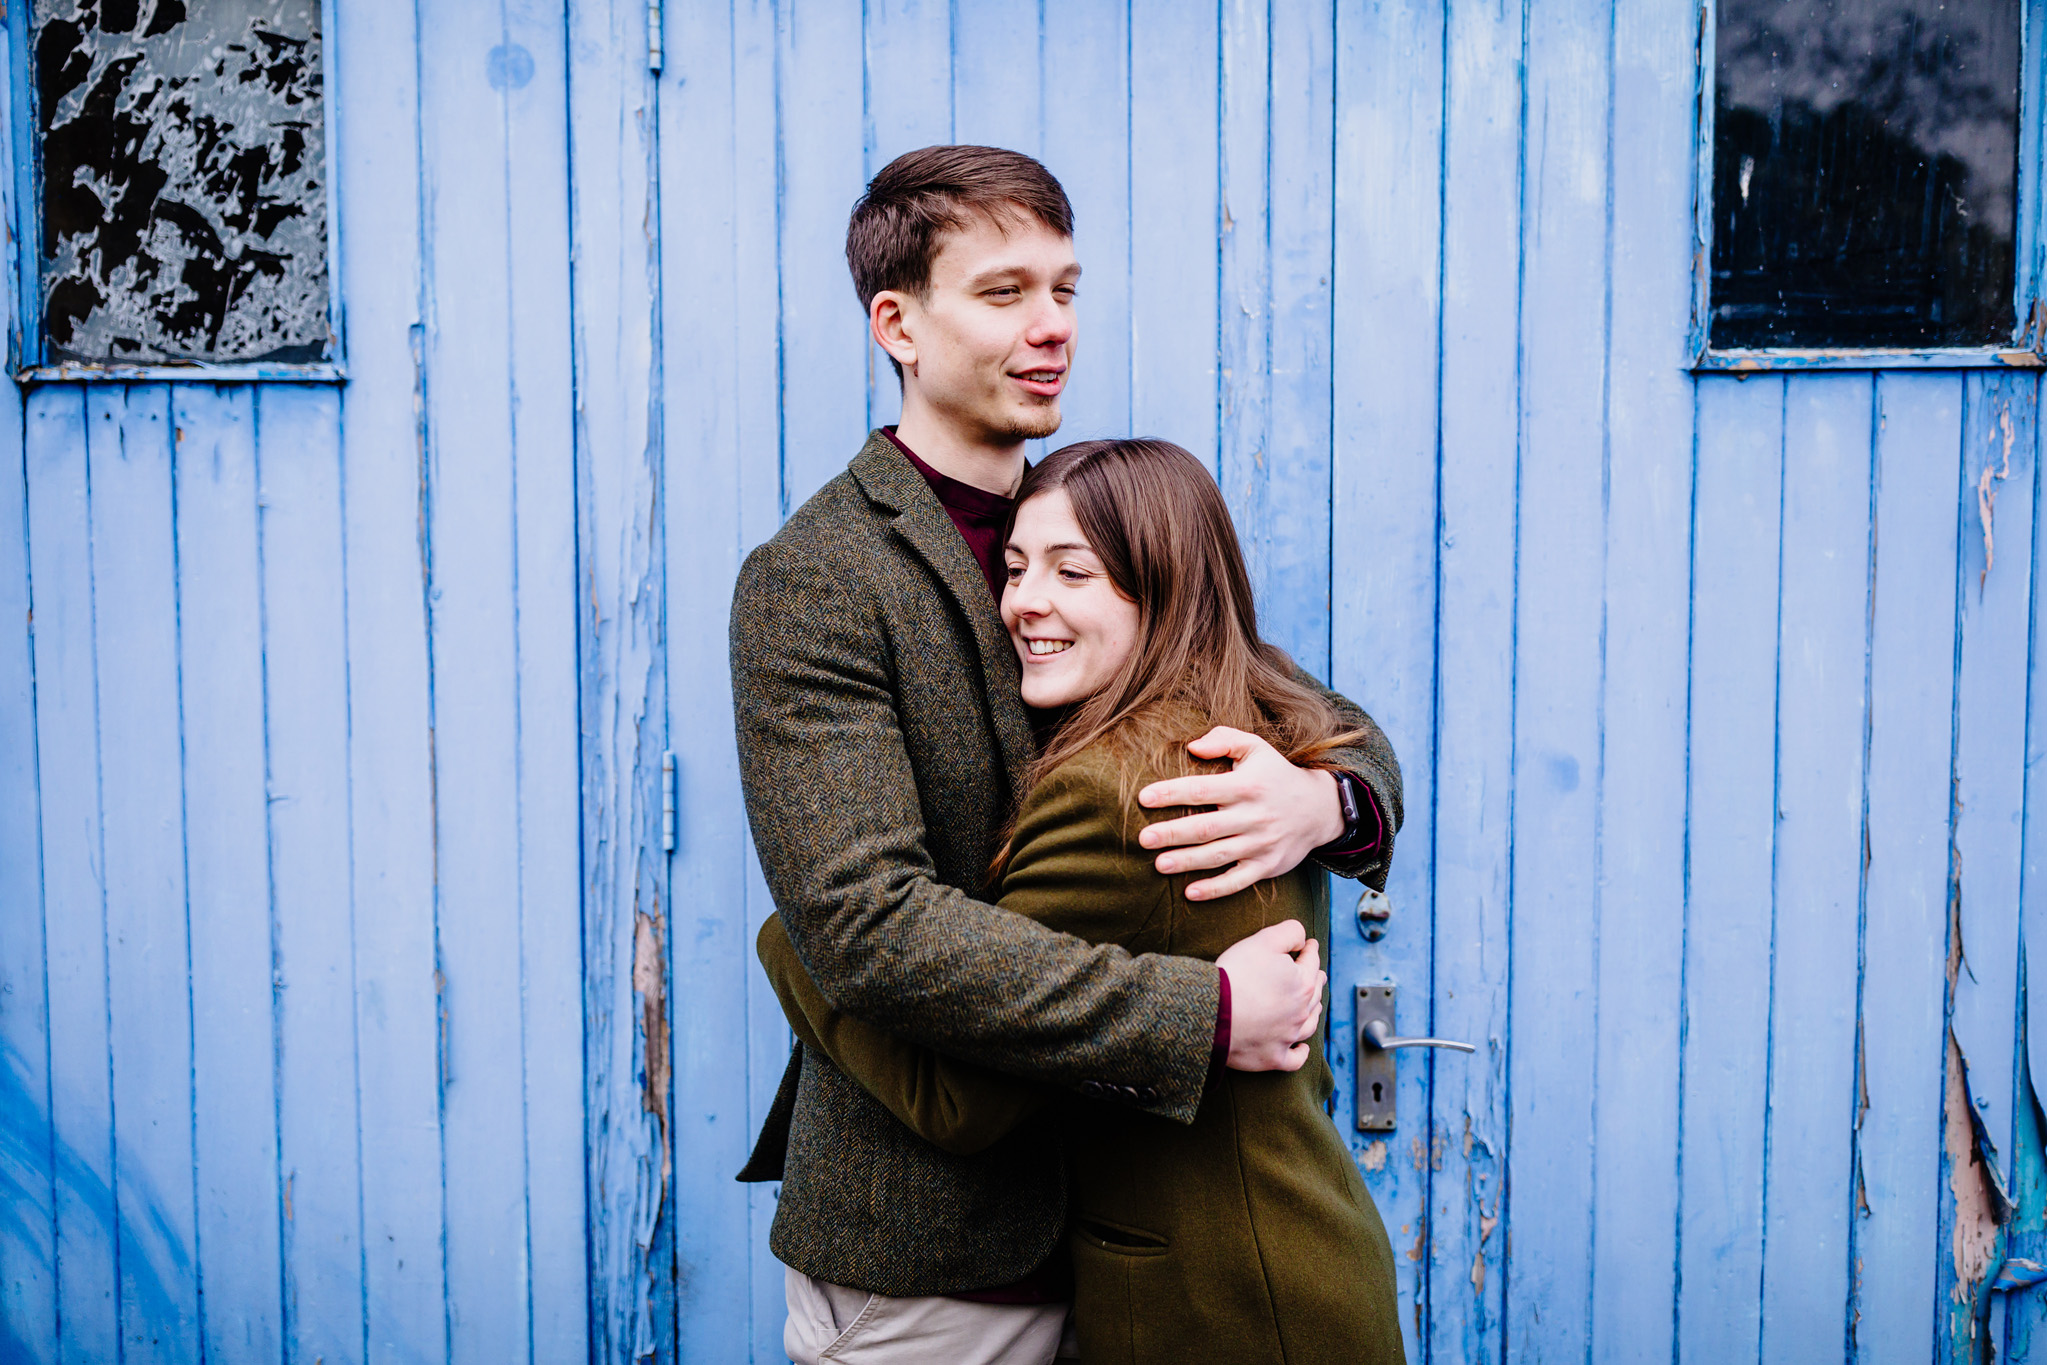 a colourful pre-wedding photograph